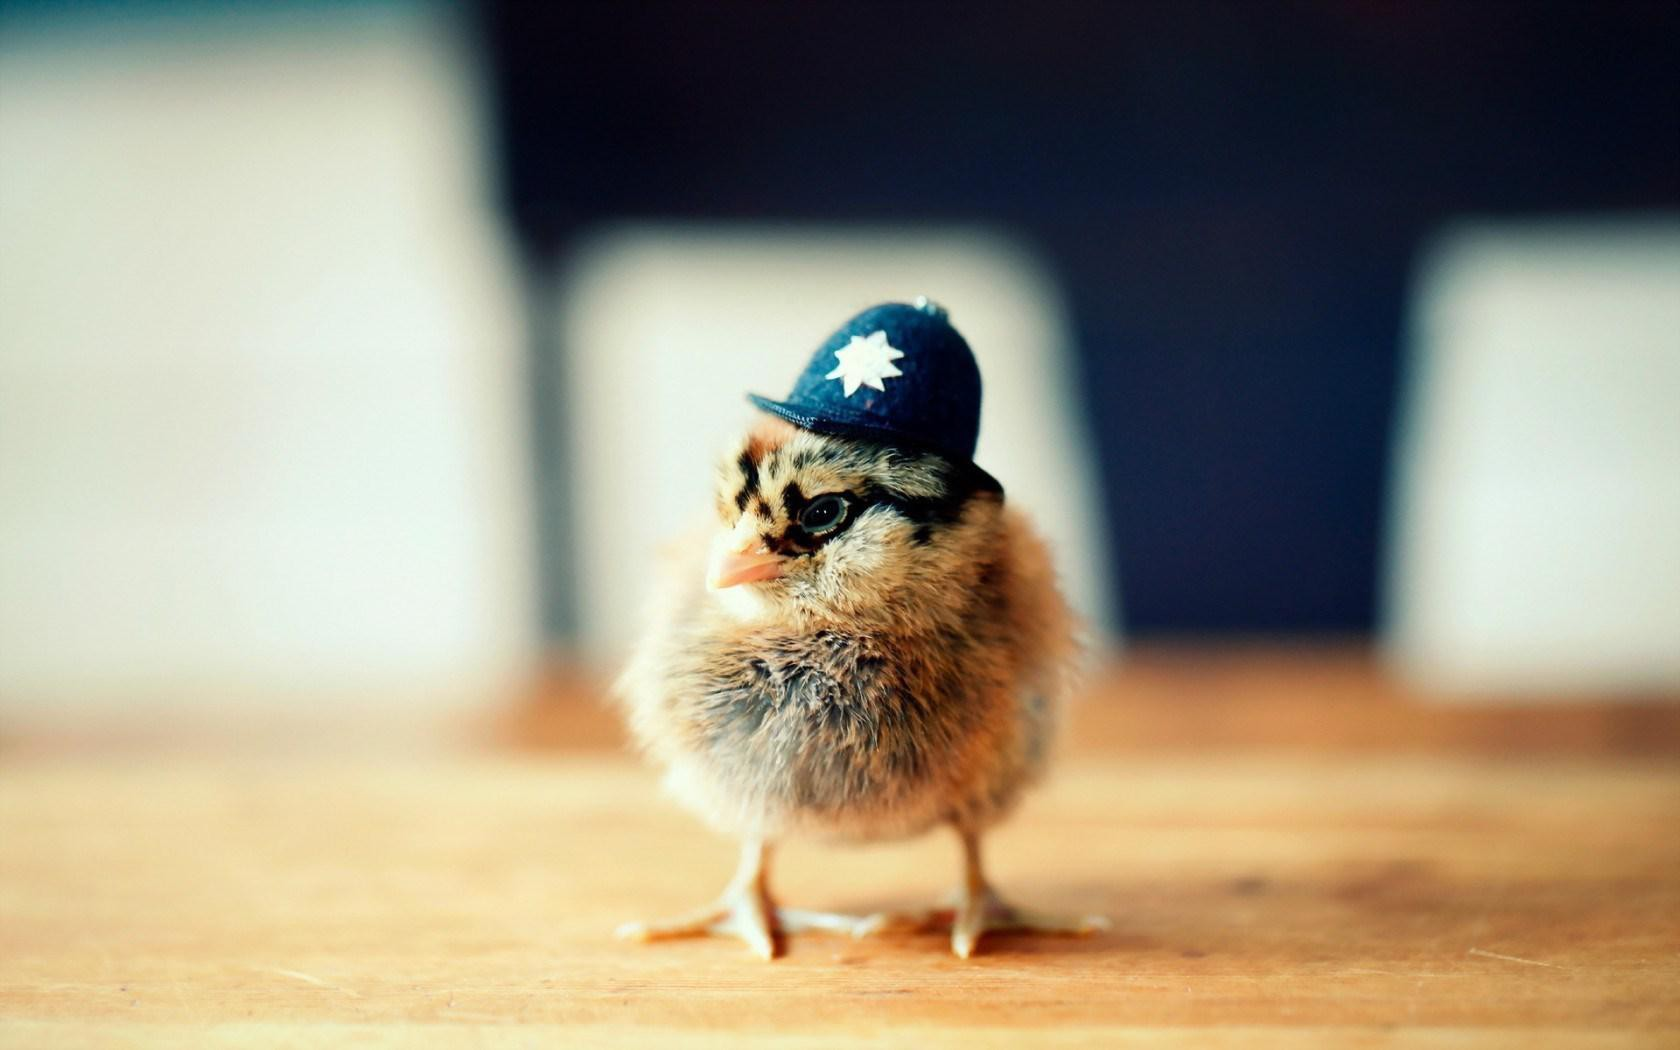 Cute Chicken Hat Funny Wallpapers   New HD Wallpapers 1680x1050